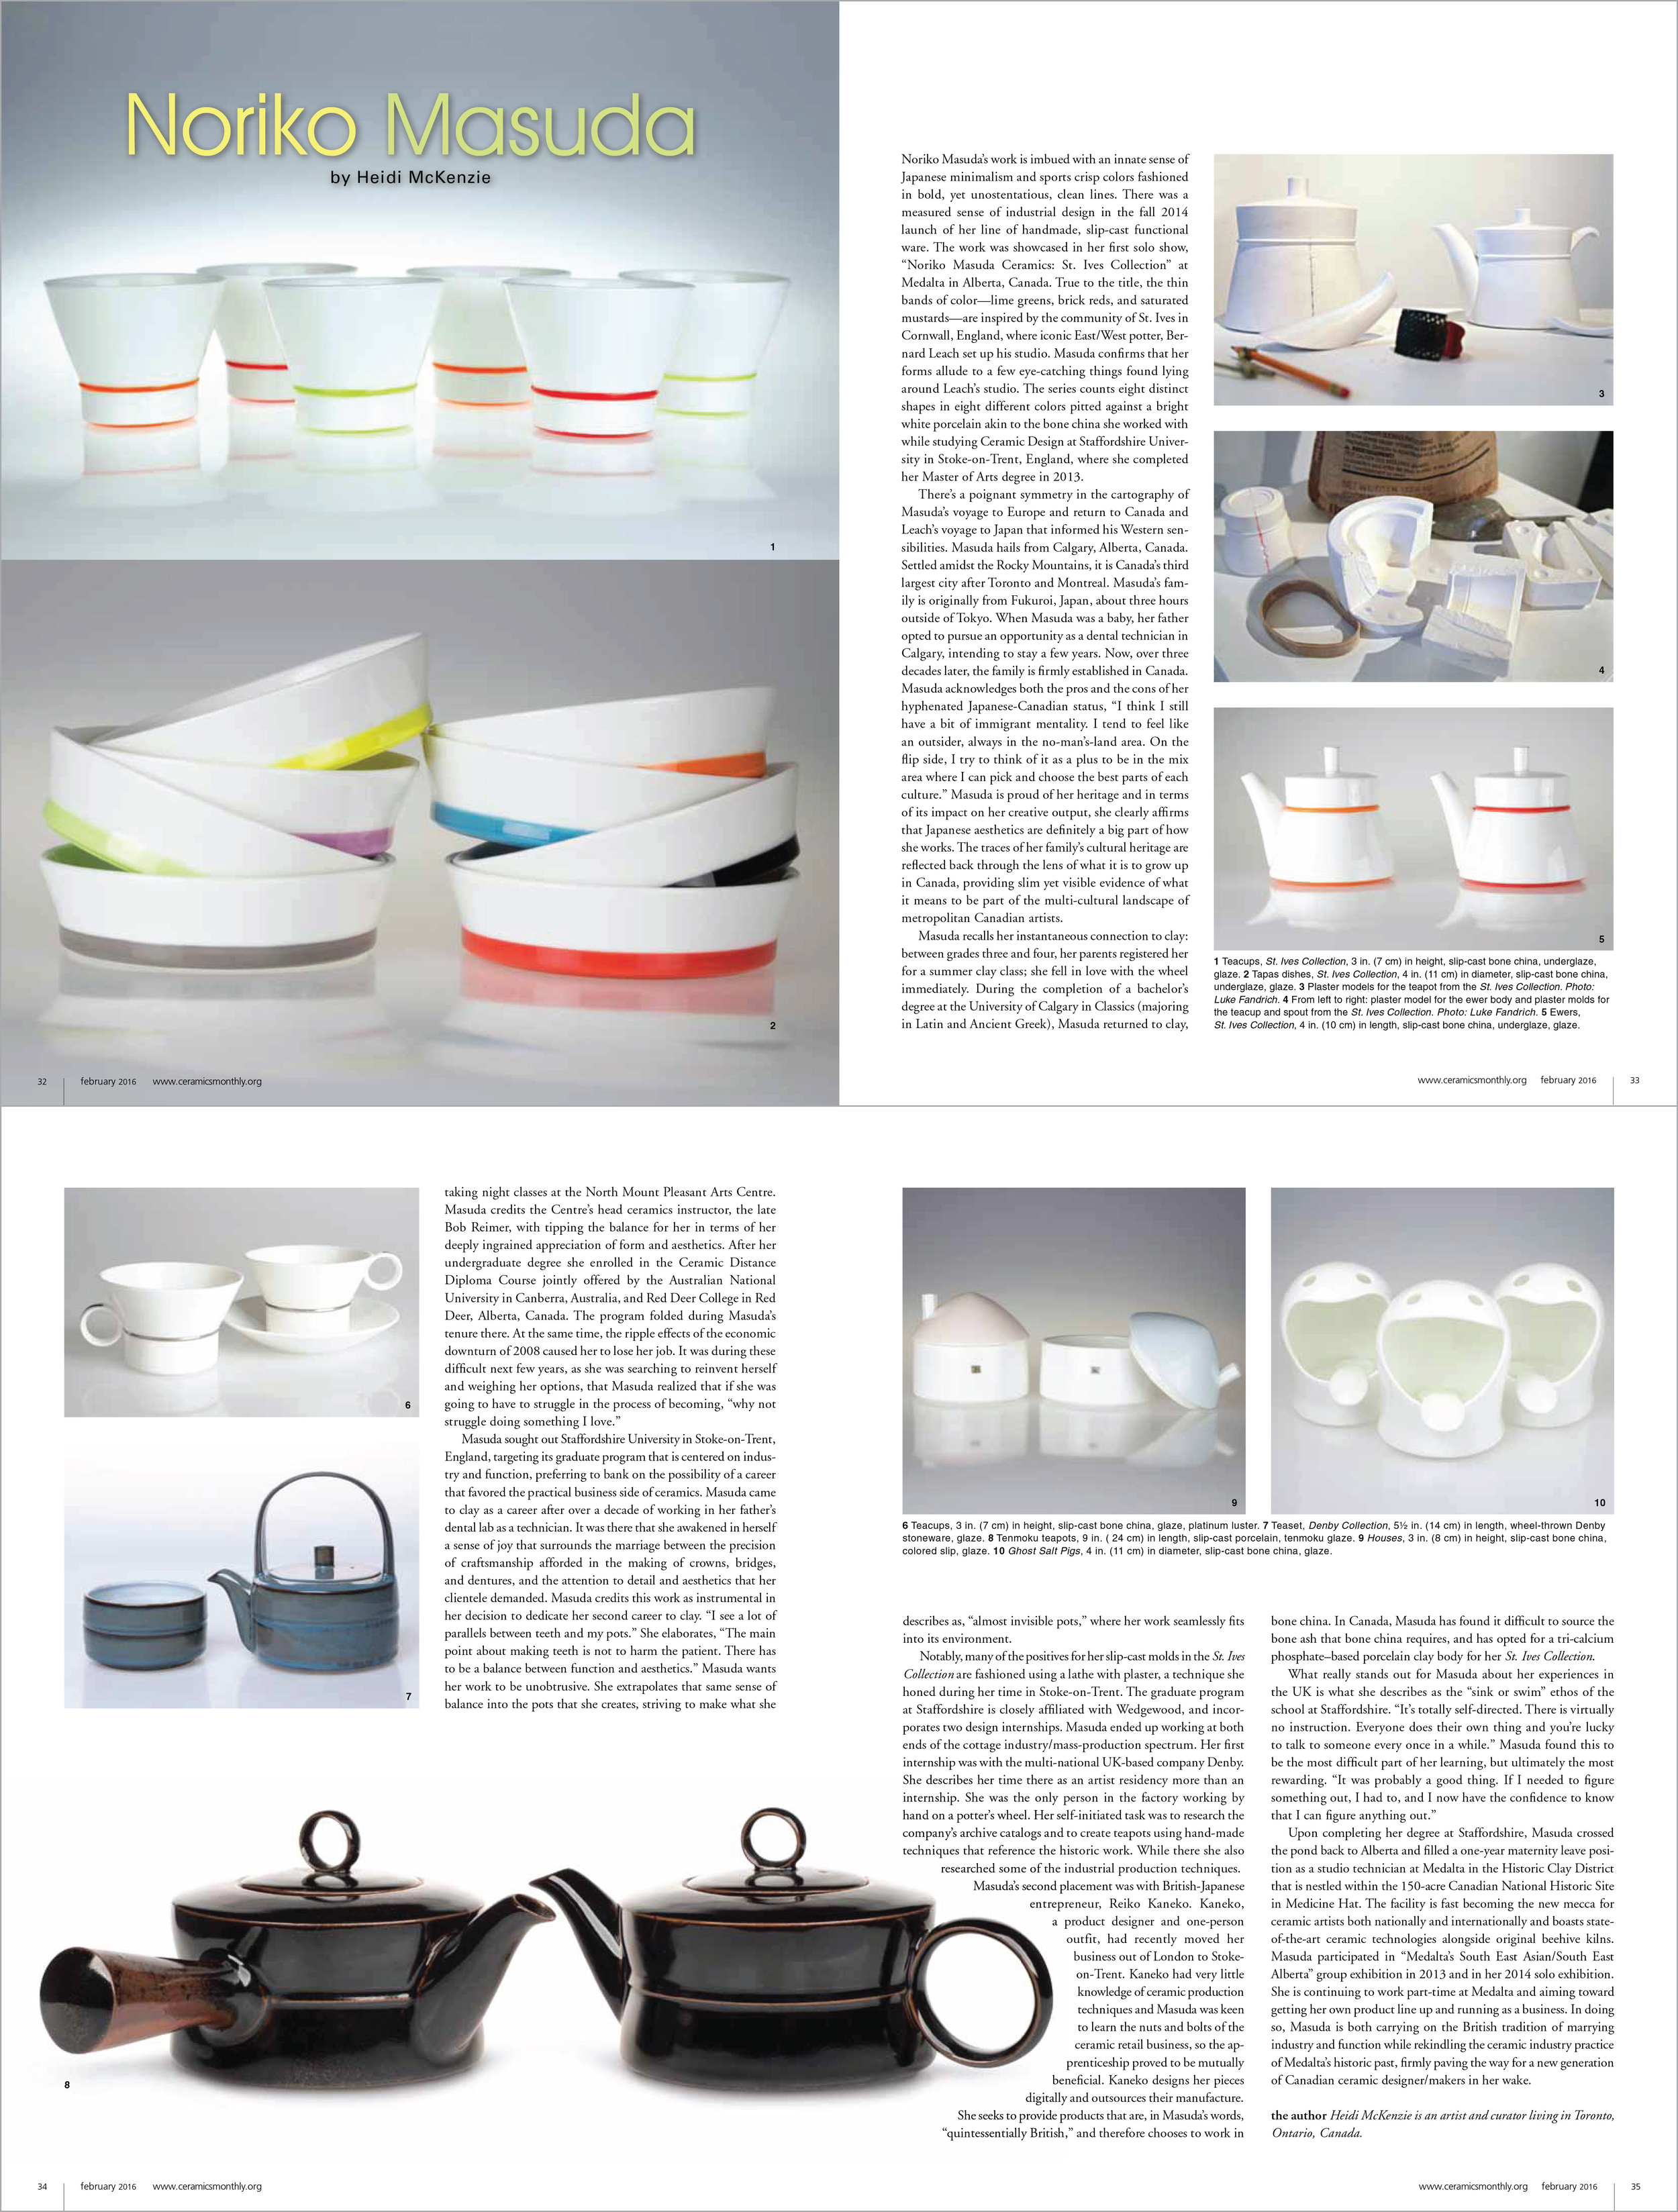 Originally published in February 2016 issue of Ceramics Monthly, pages 32-35.  http://www.ceramicsmonthly.org  . Copyright, The American Ceramic Society. Reprinted with permission.